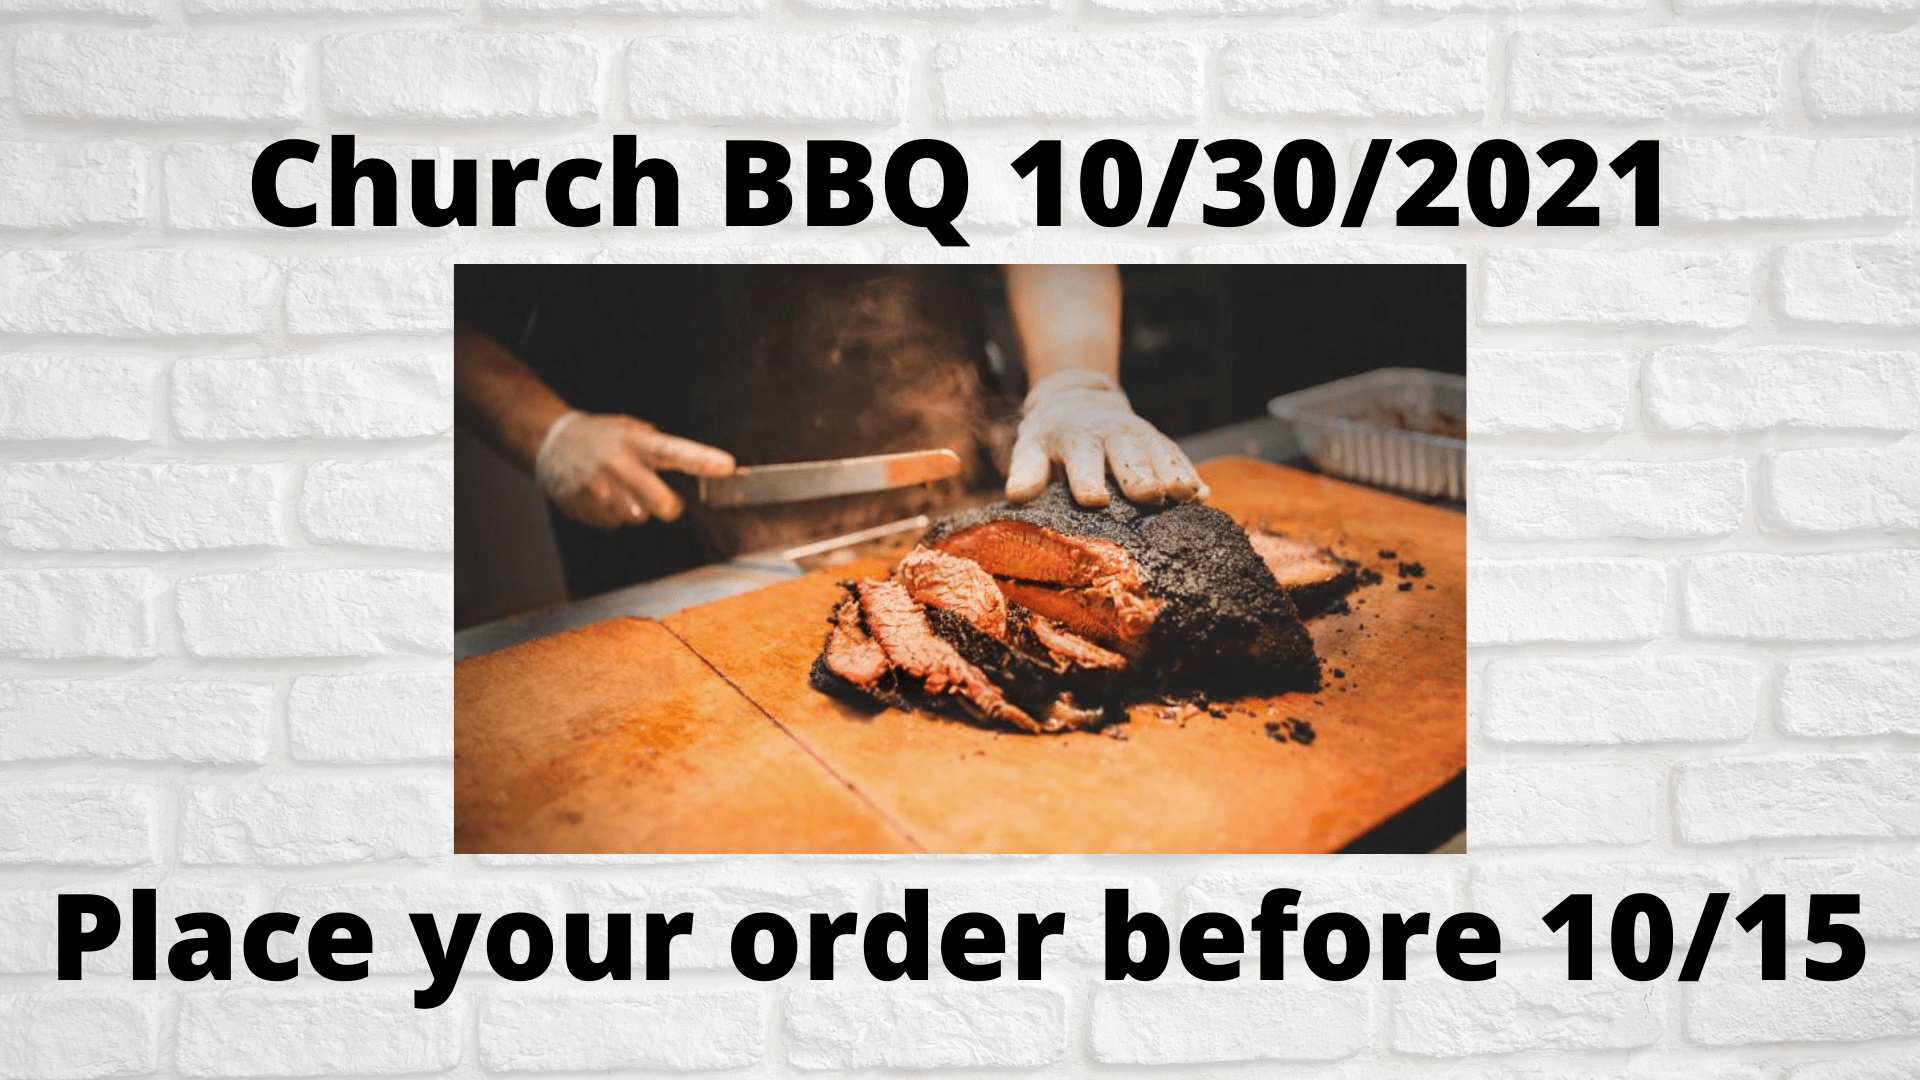 Remember to Pickup Your BBQ Order 10/30